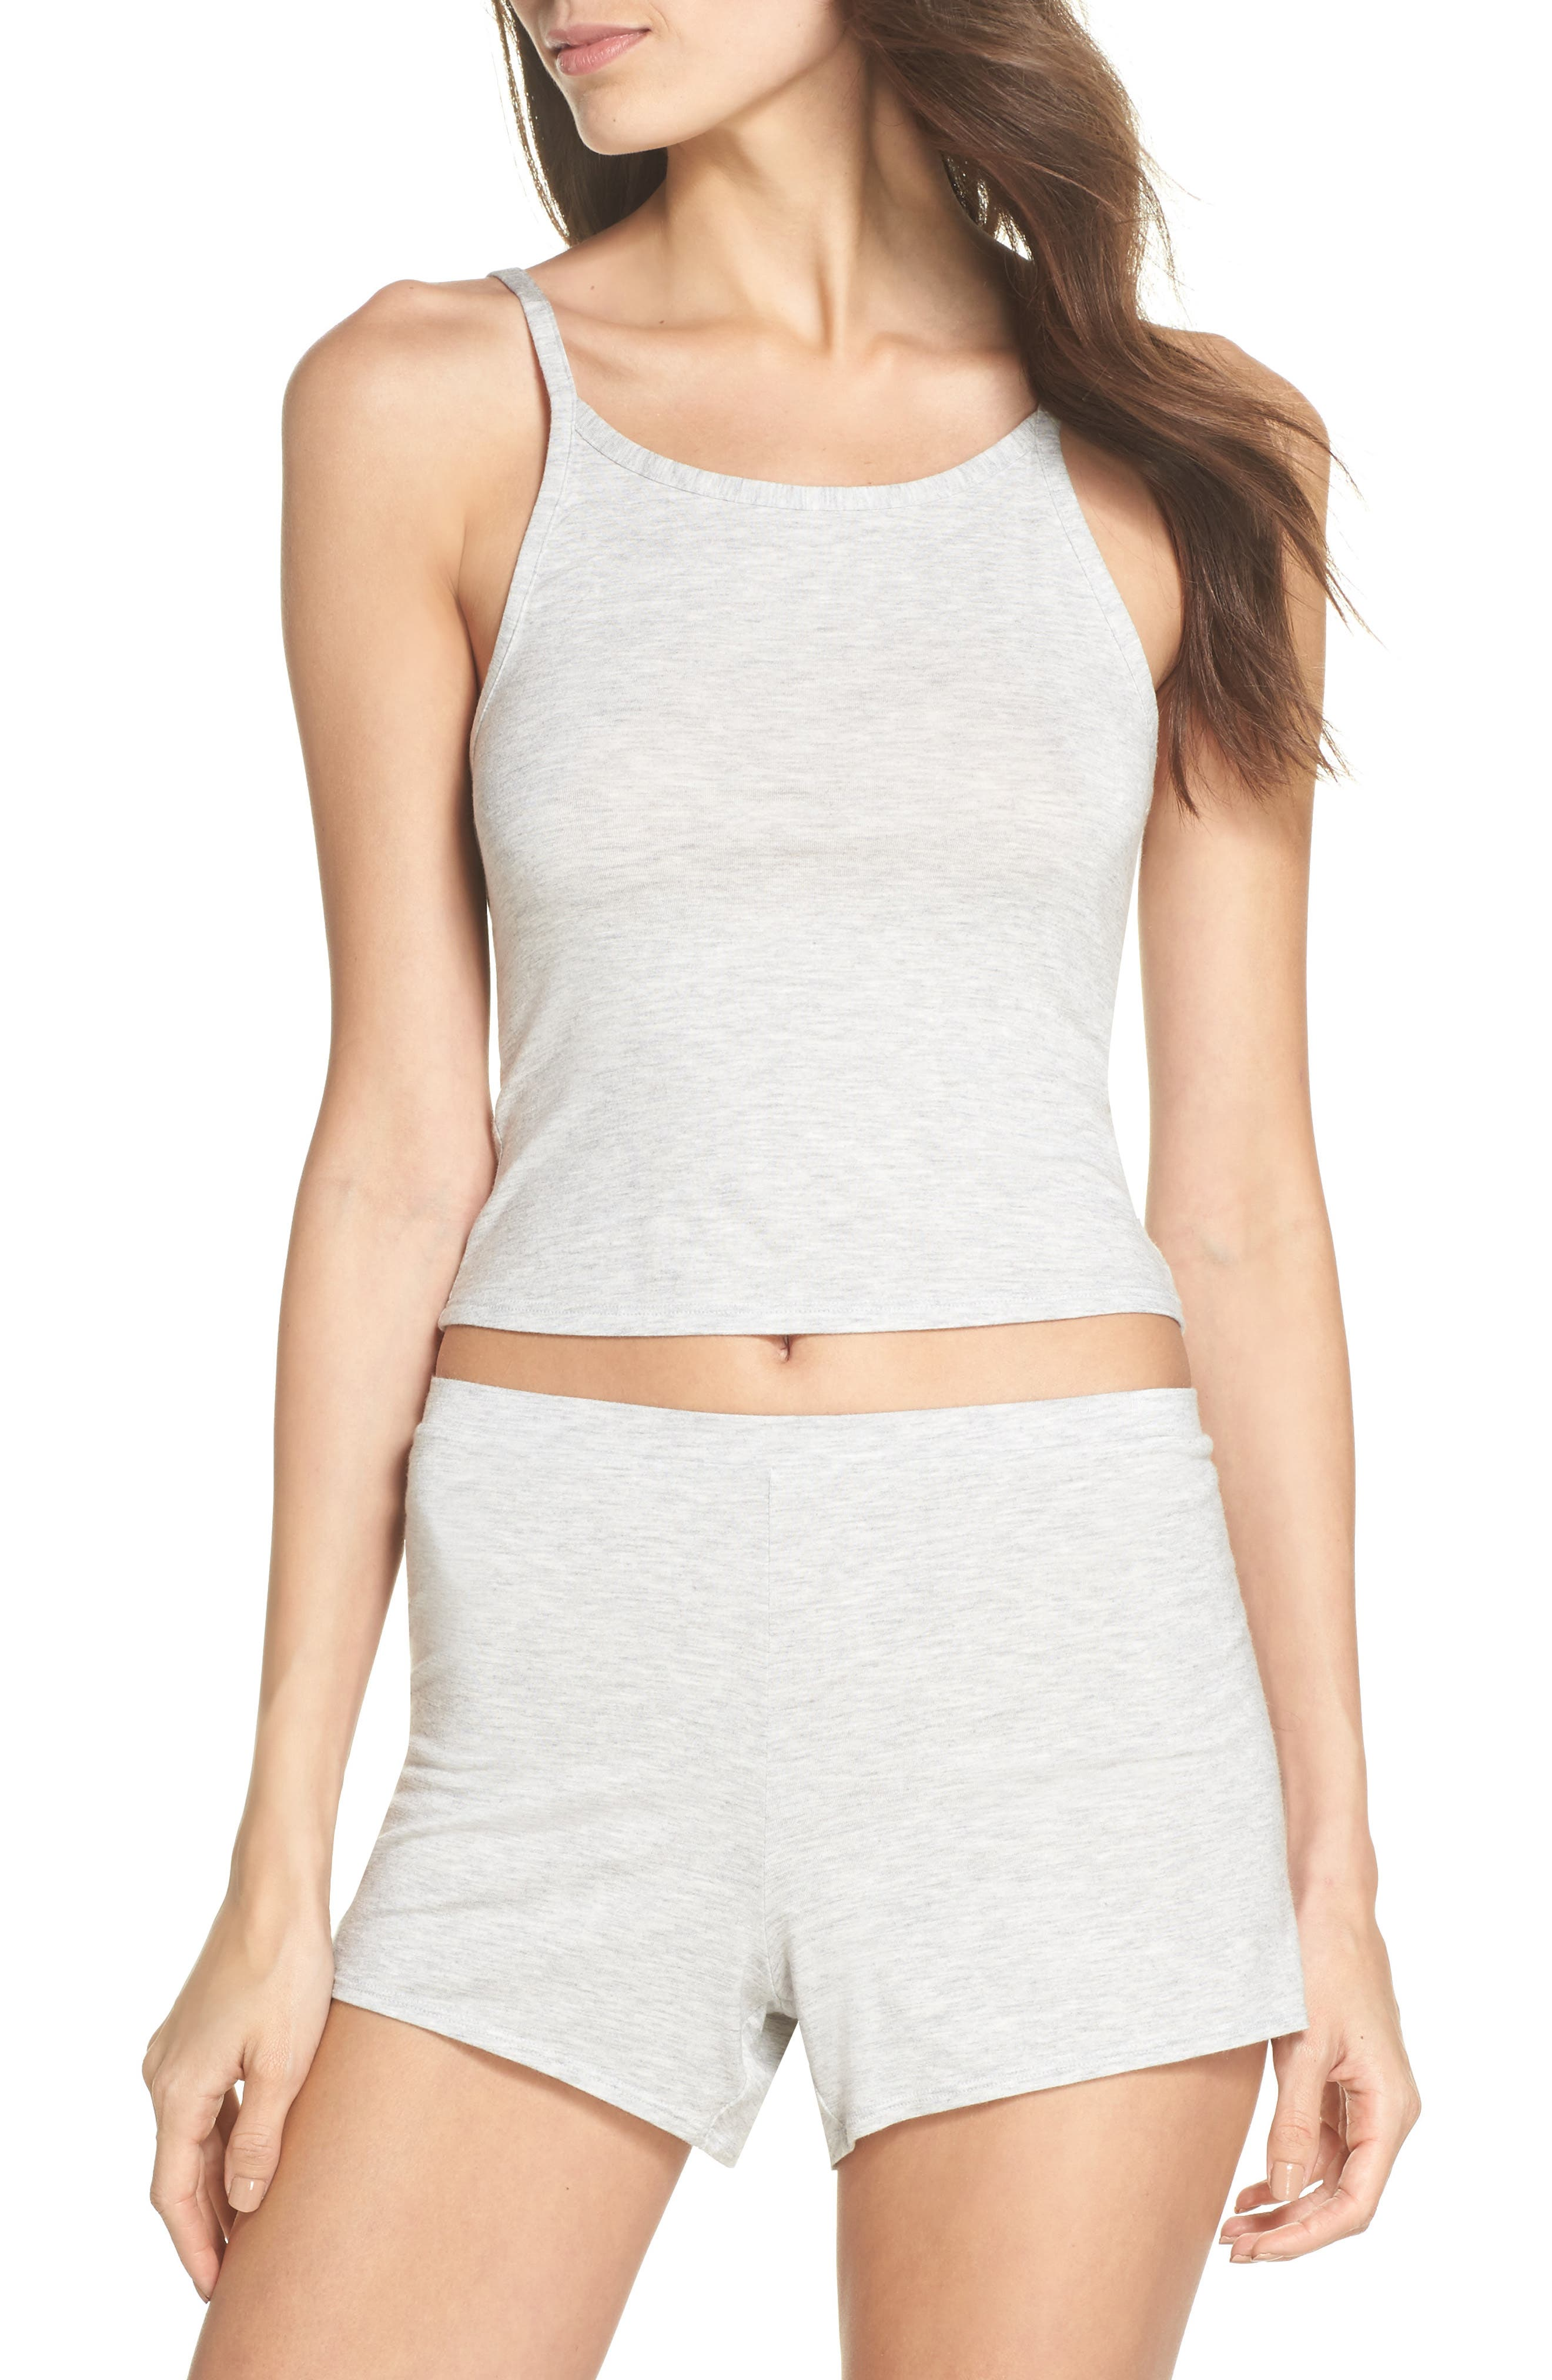 Undressed Pajama Shorts,                             Alternate thumbnail 5, color,                             Silver